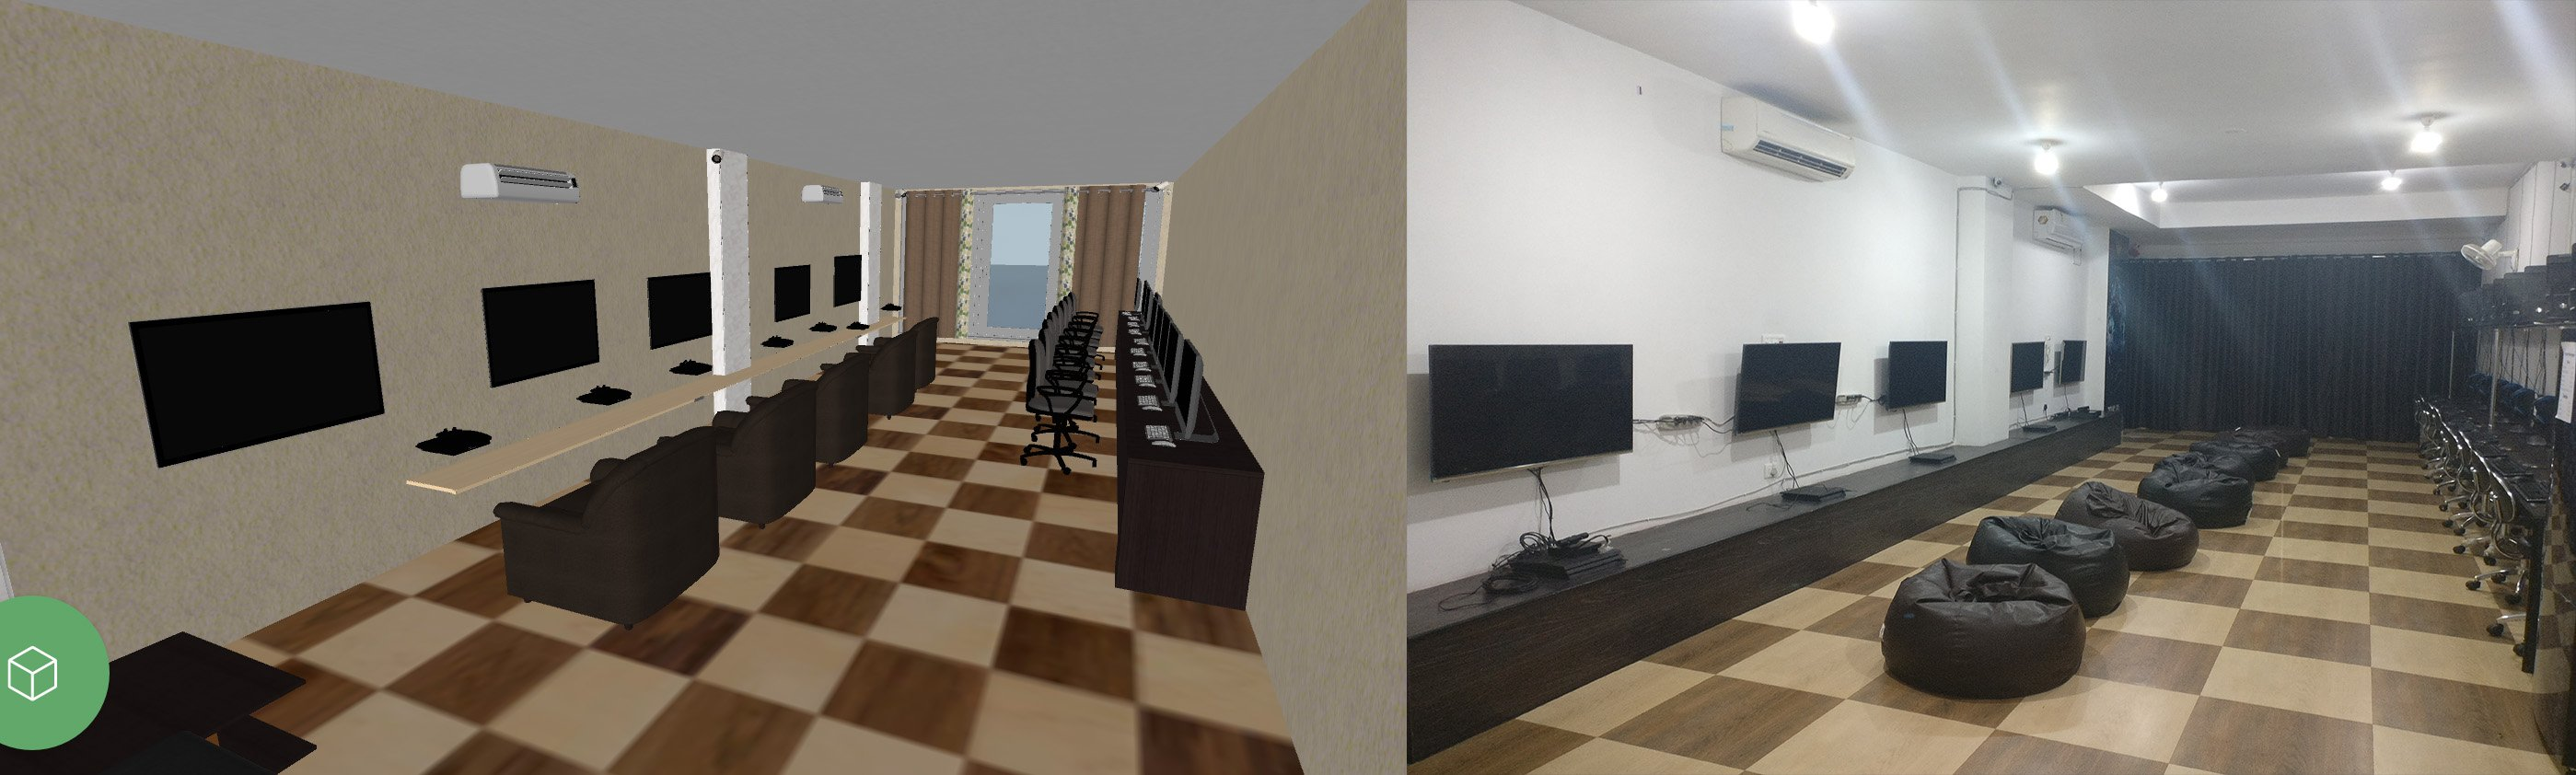 Panner 5D and Real Project